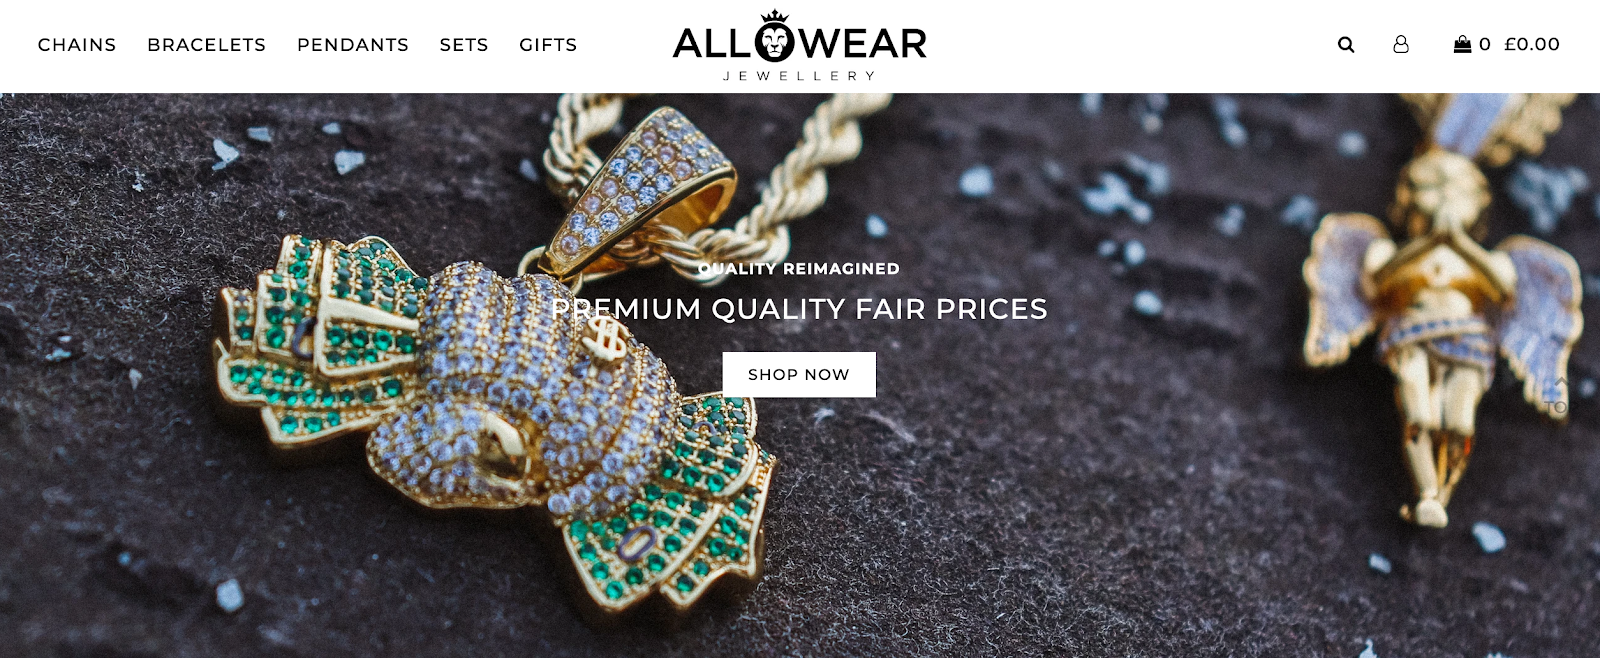 Affordable Premium Bling | All Wear Jewelry